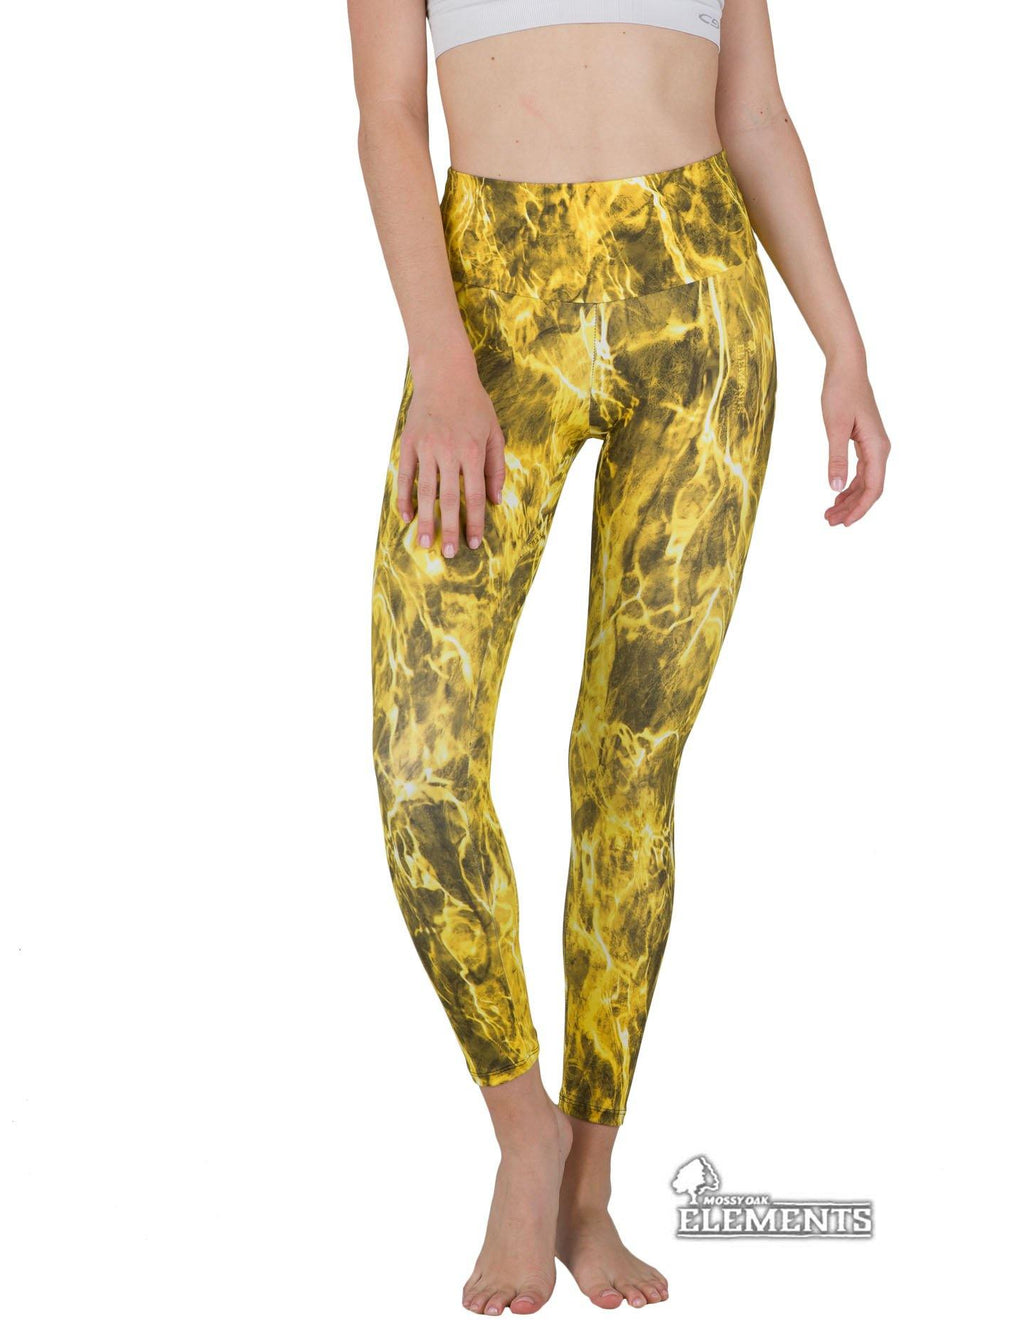 Apsara Leggings High Waist Full Length, Mossy Oak Elements Yellowfin